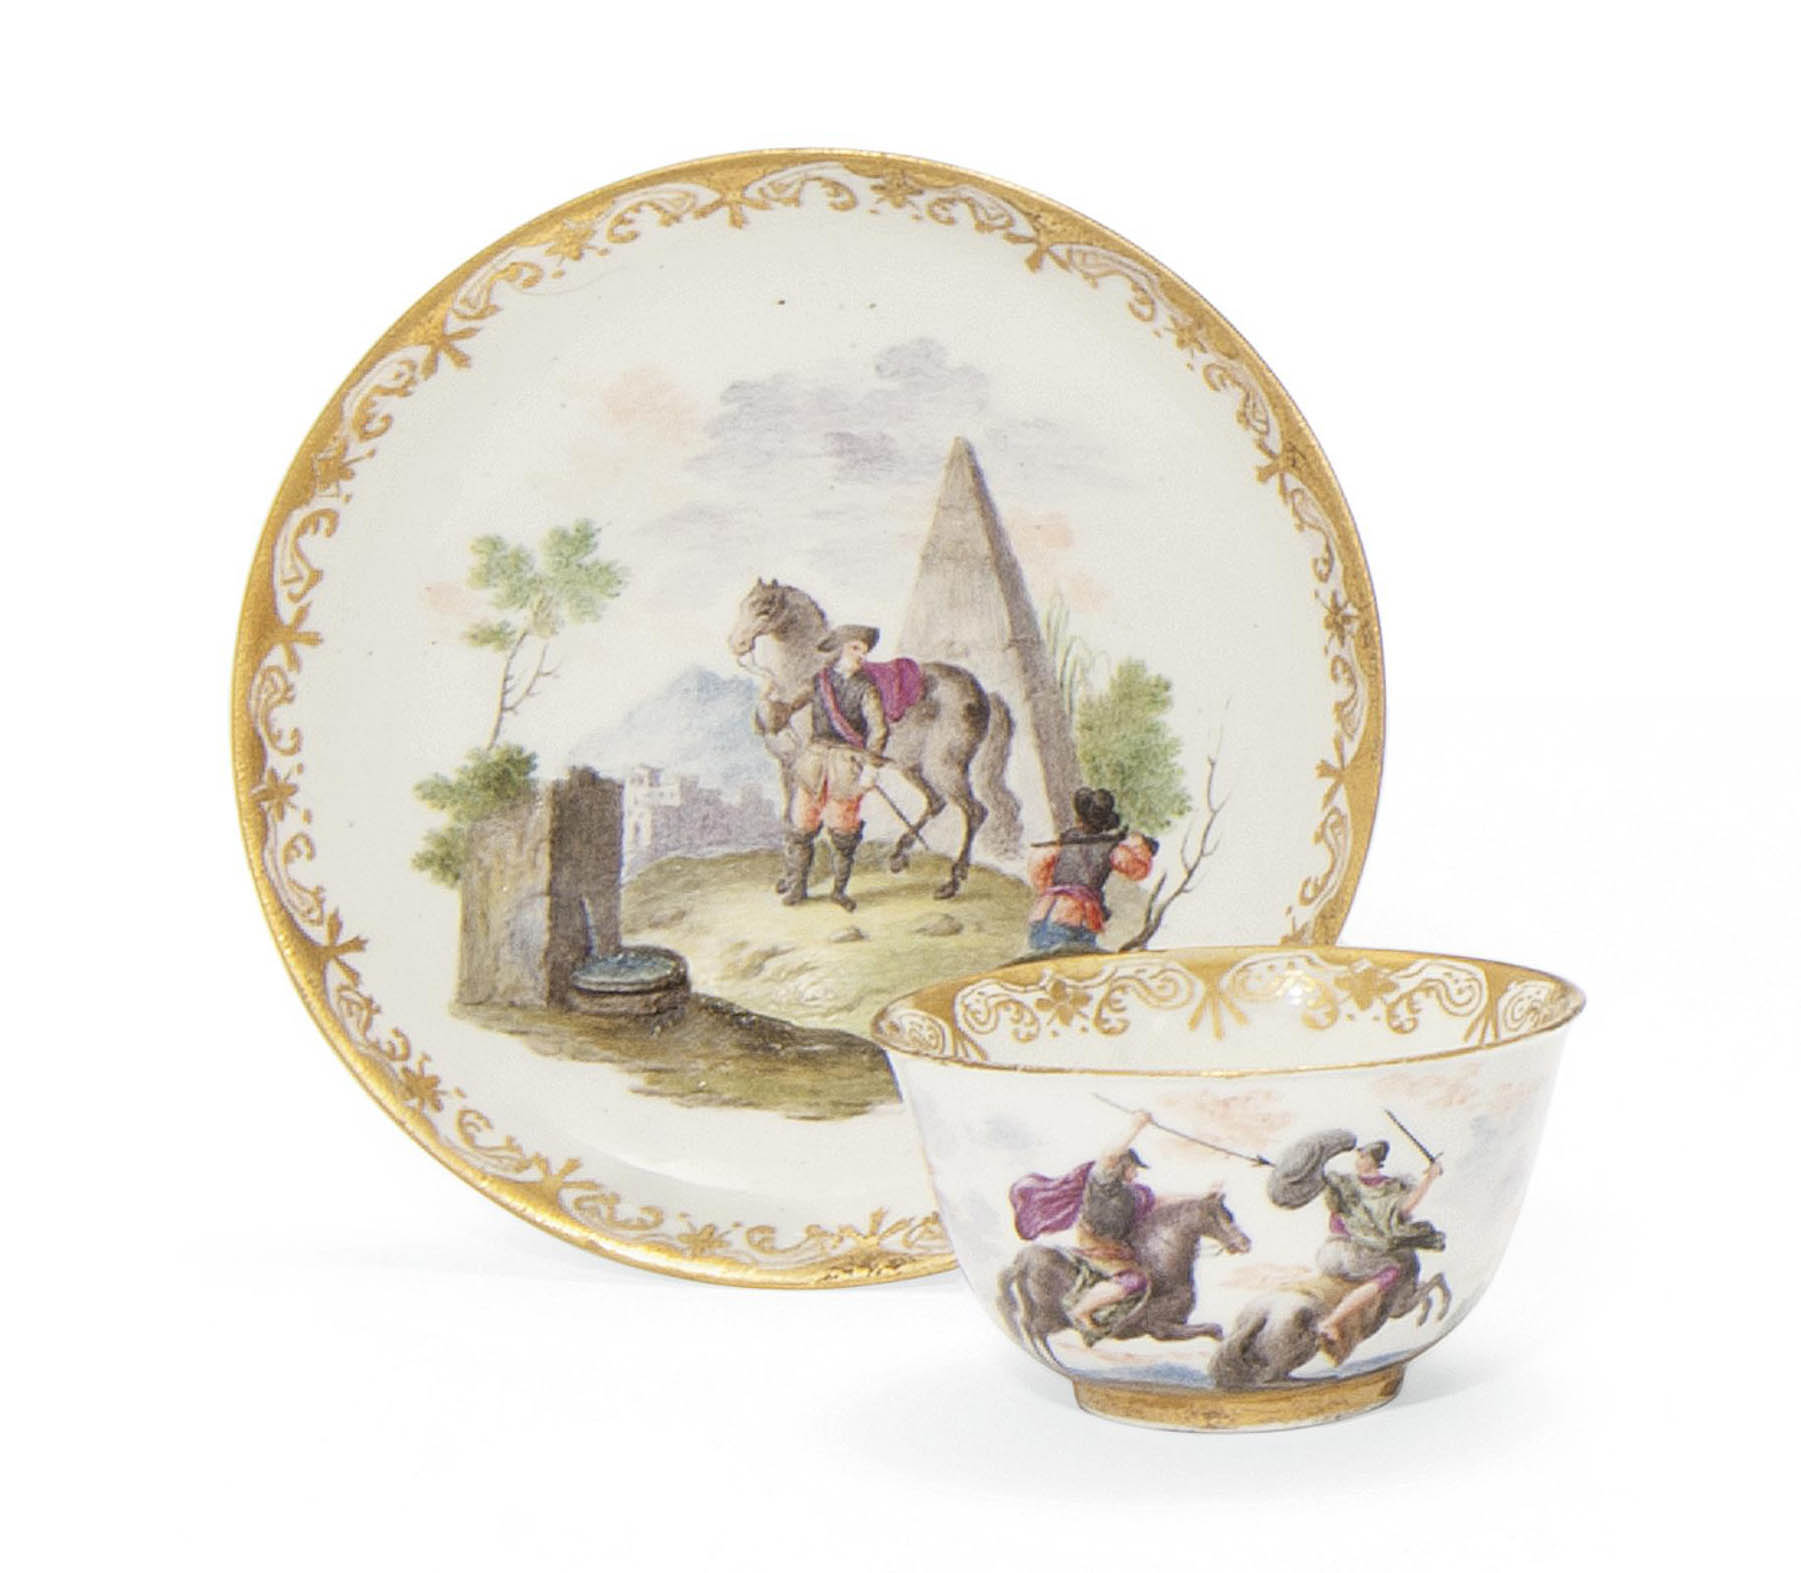 A CAPODIMONTE (CARLO III) TEABOWL AND SAUCER